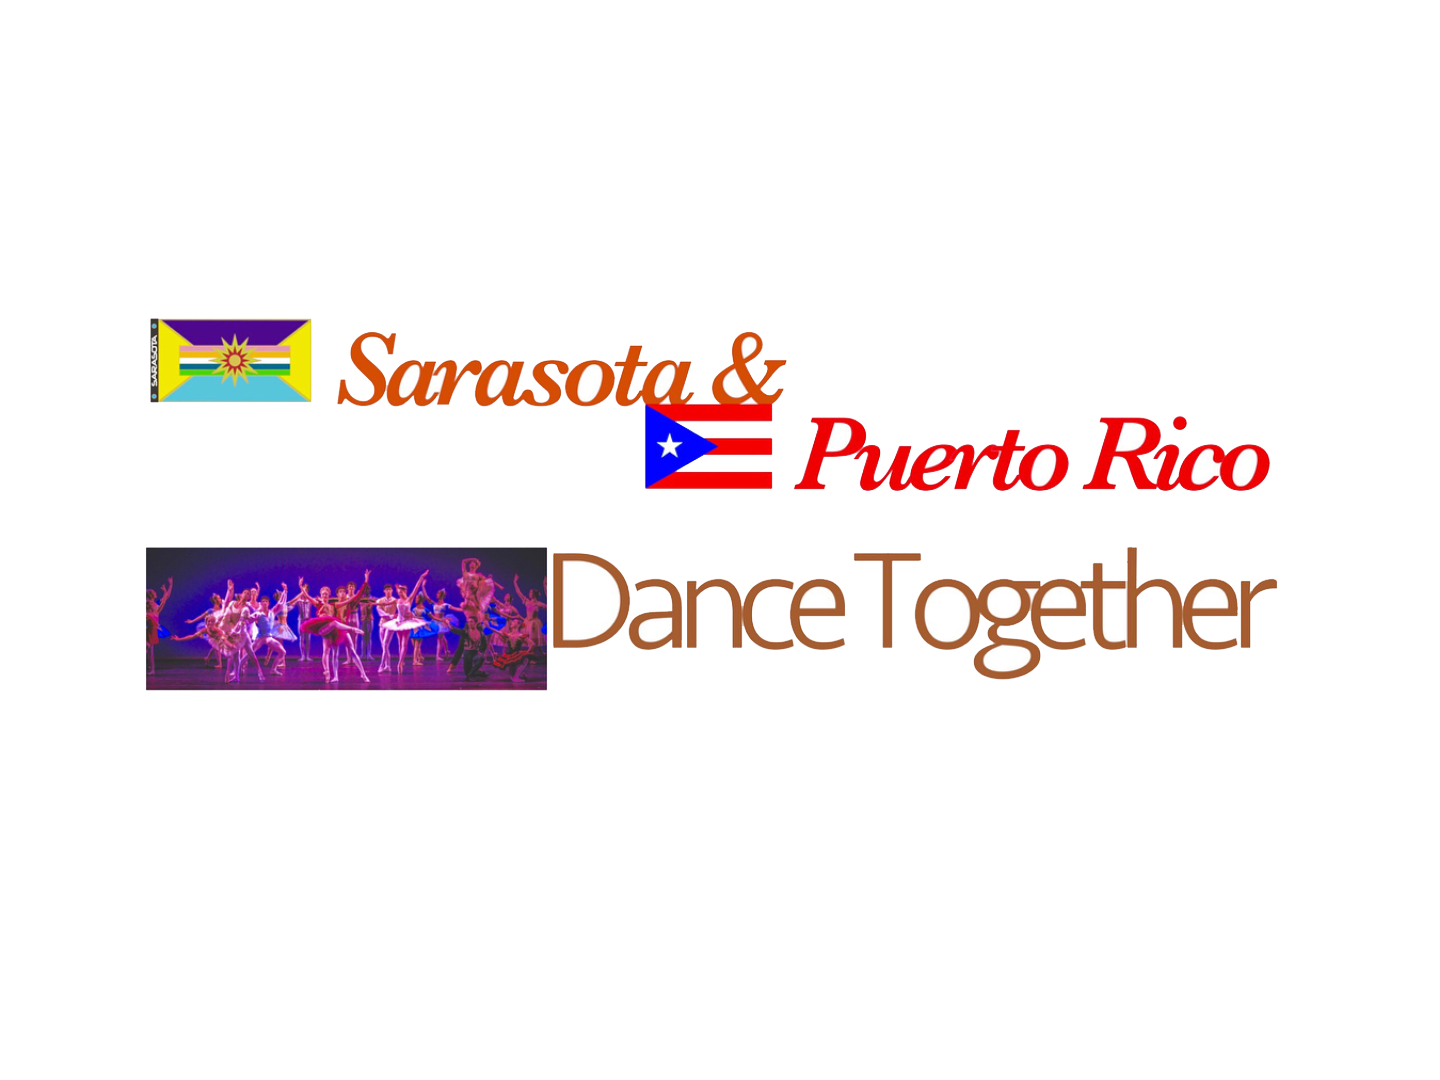 A Florida Ballet School Is Helping Puerto Rican Dancers in Need—and It Needs Your Support